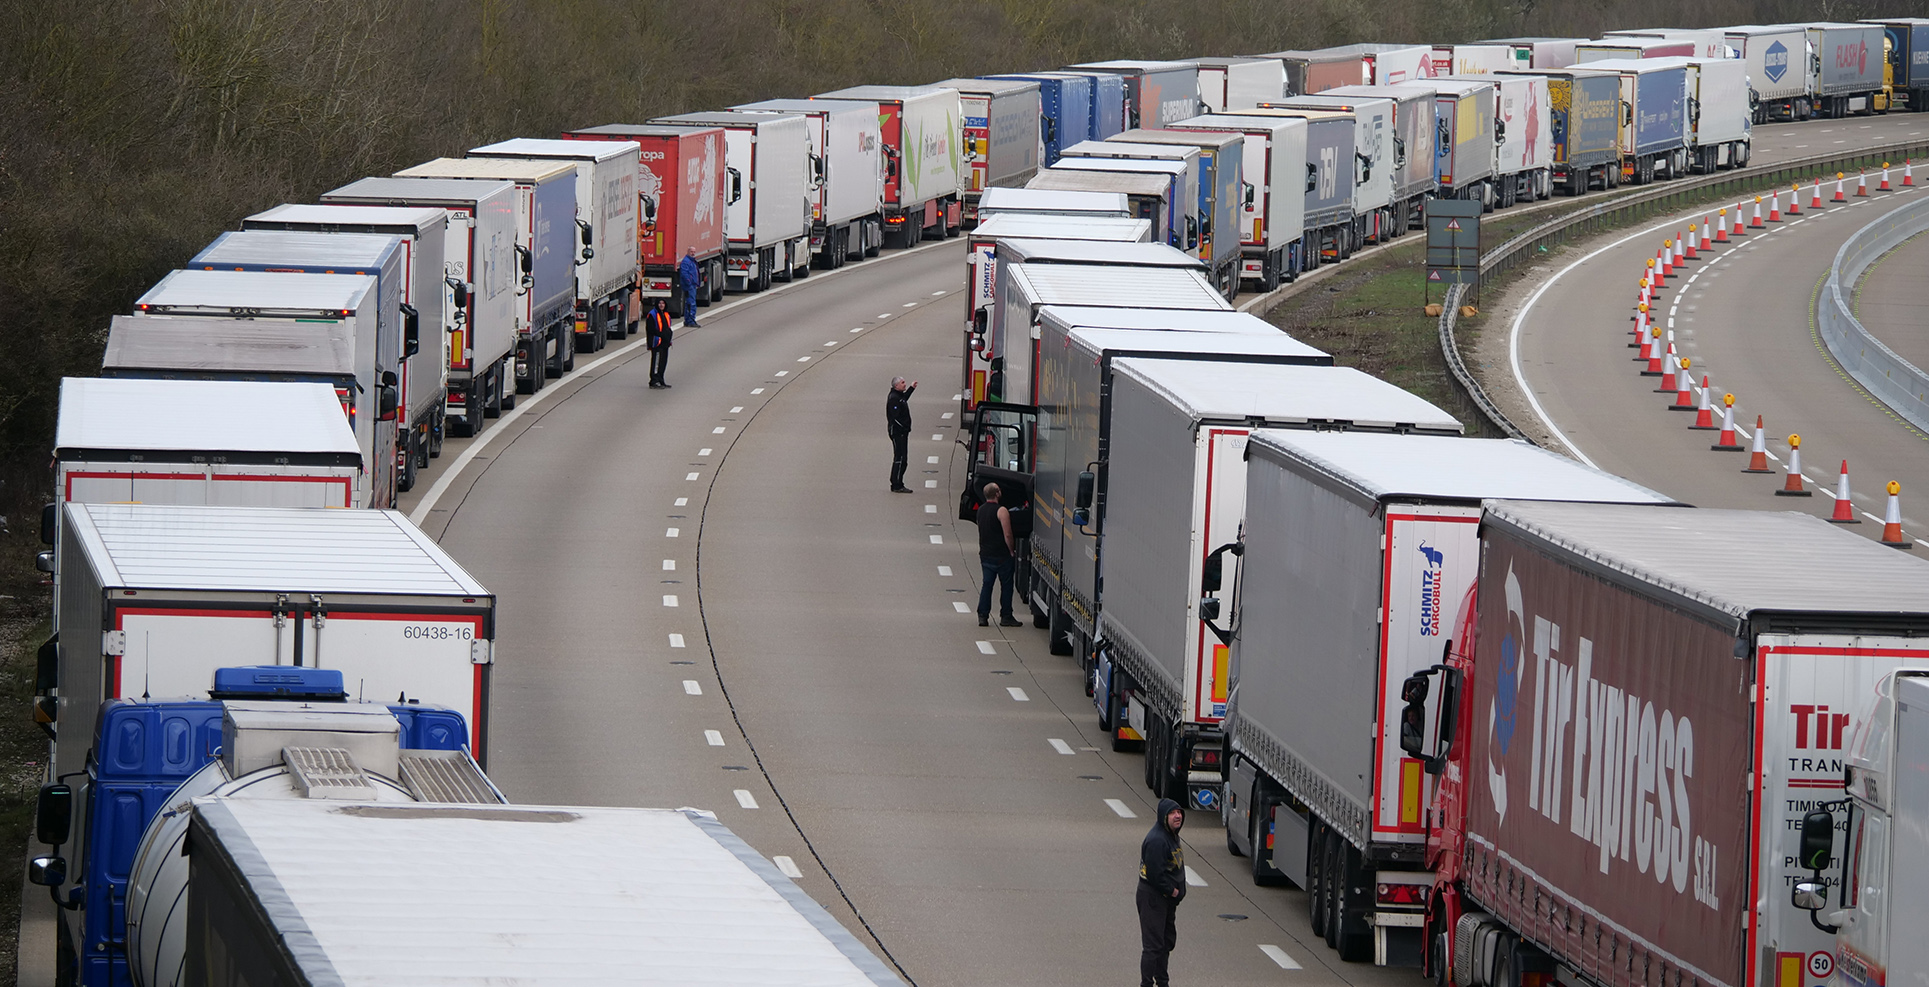 Hub - Brexit haulage logistics road transport regulation changes laws - no deal transition